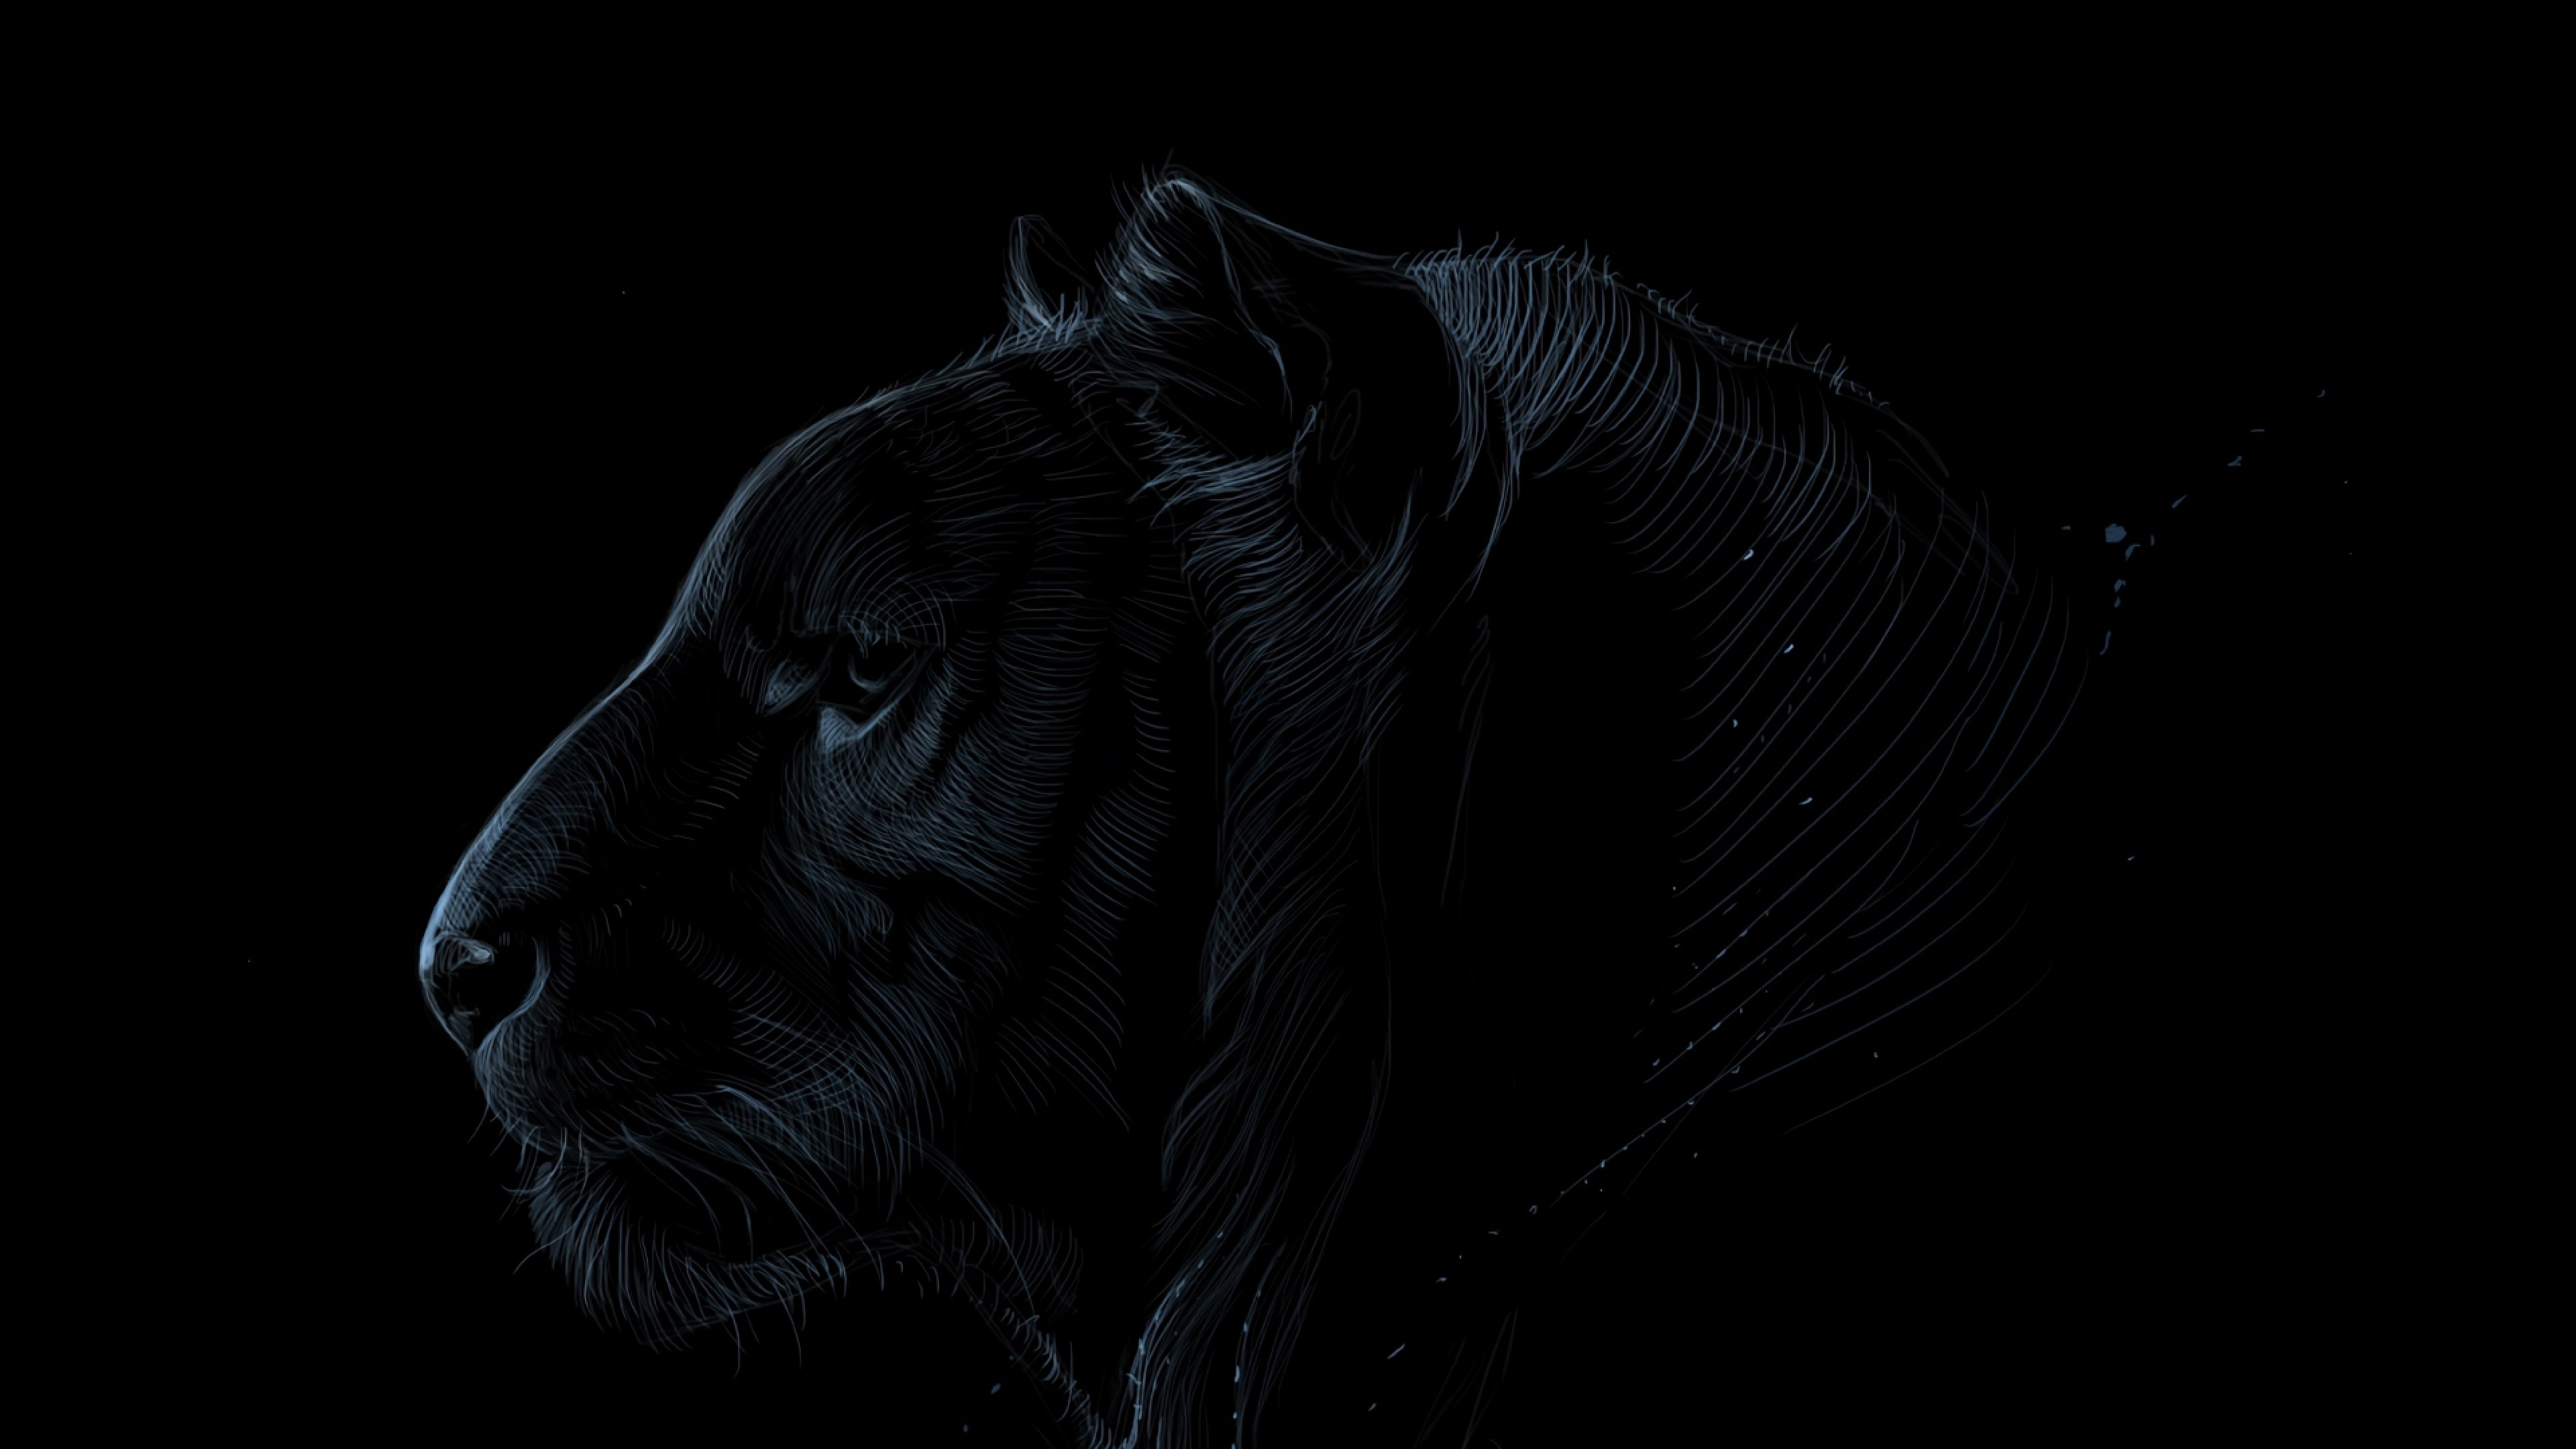 Dark Tiger Face Hd Wallpaper 4k Ultra Hd Hd Wallpaper Wallpapers Net